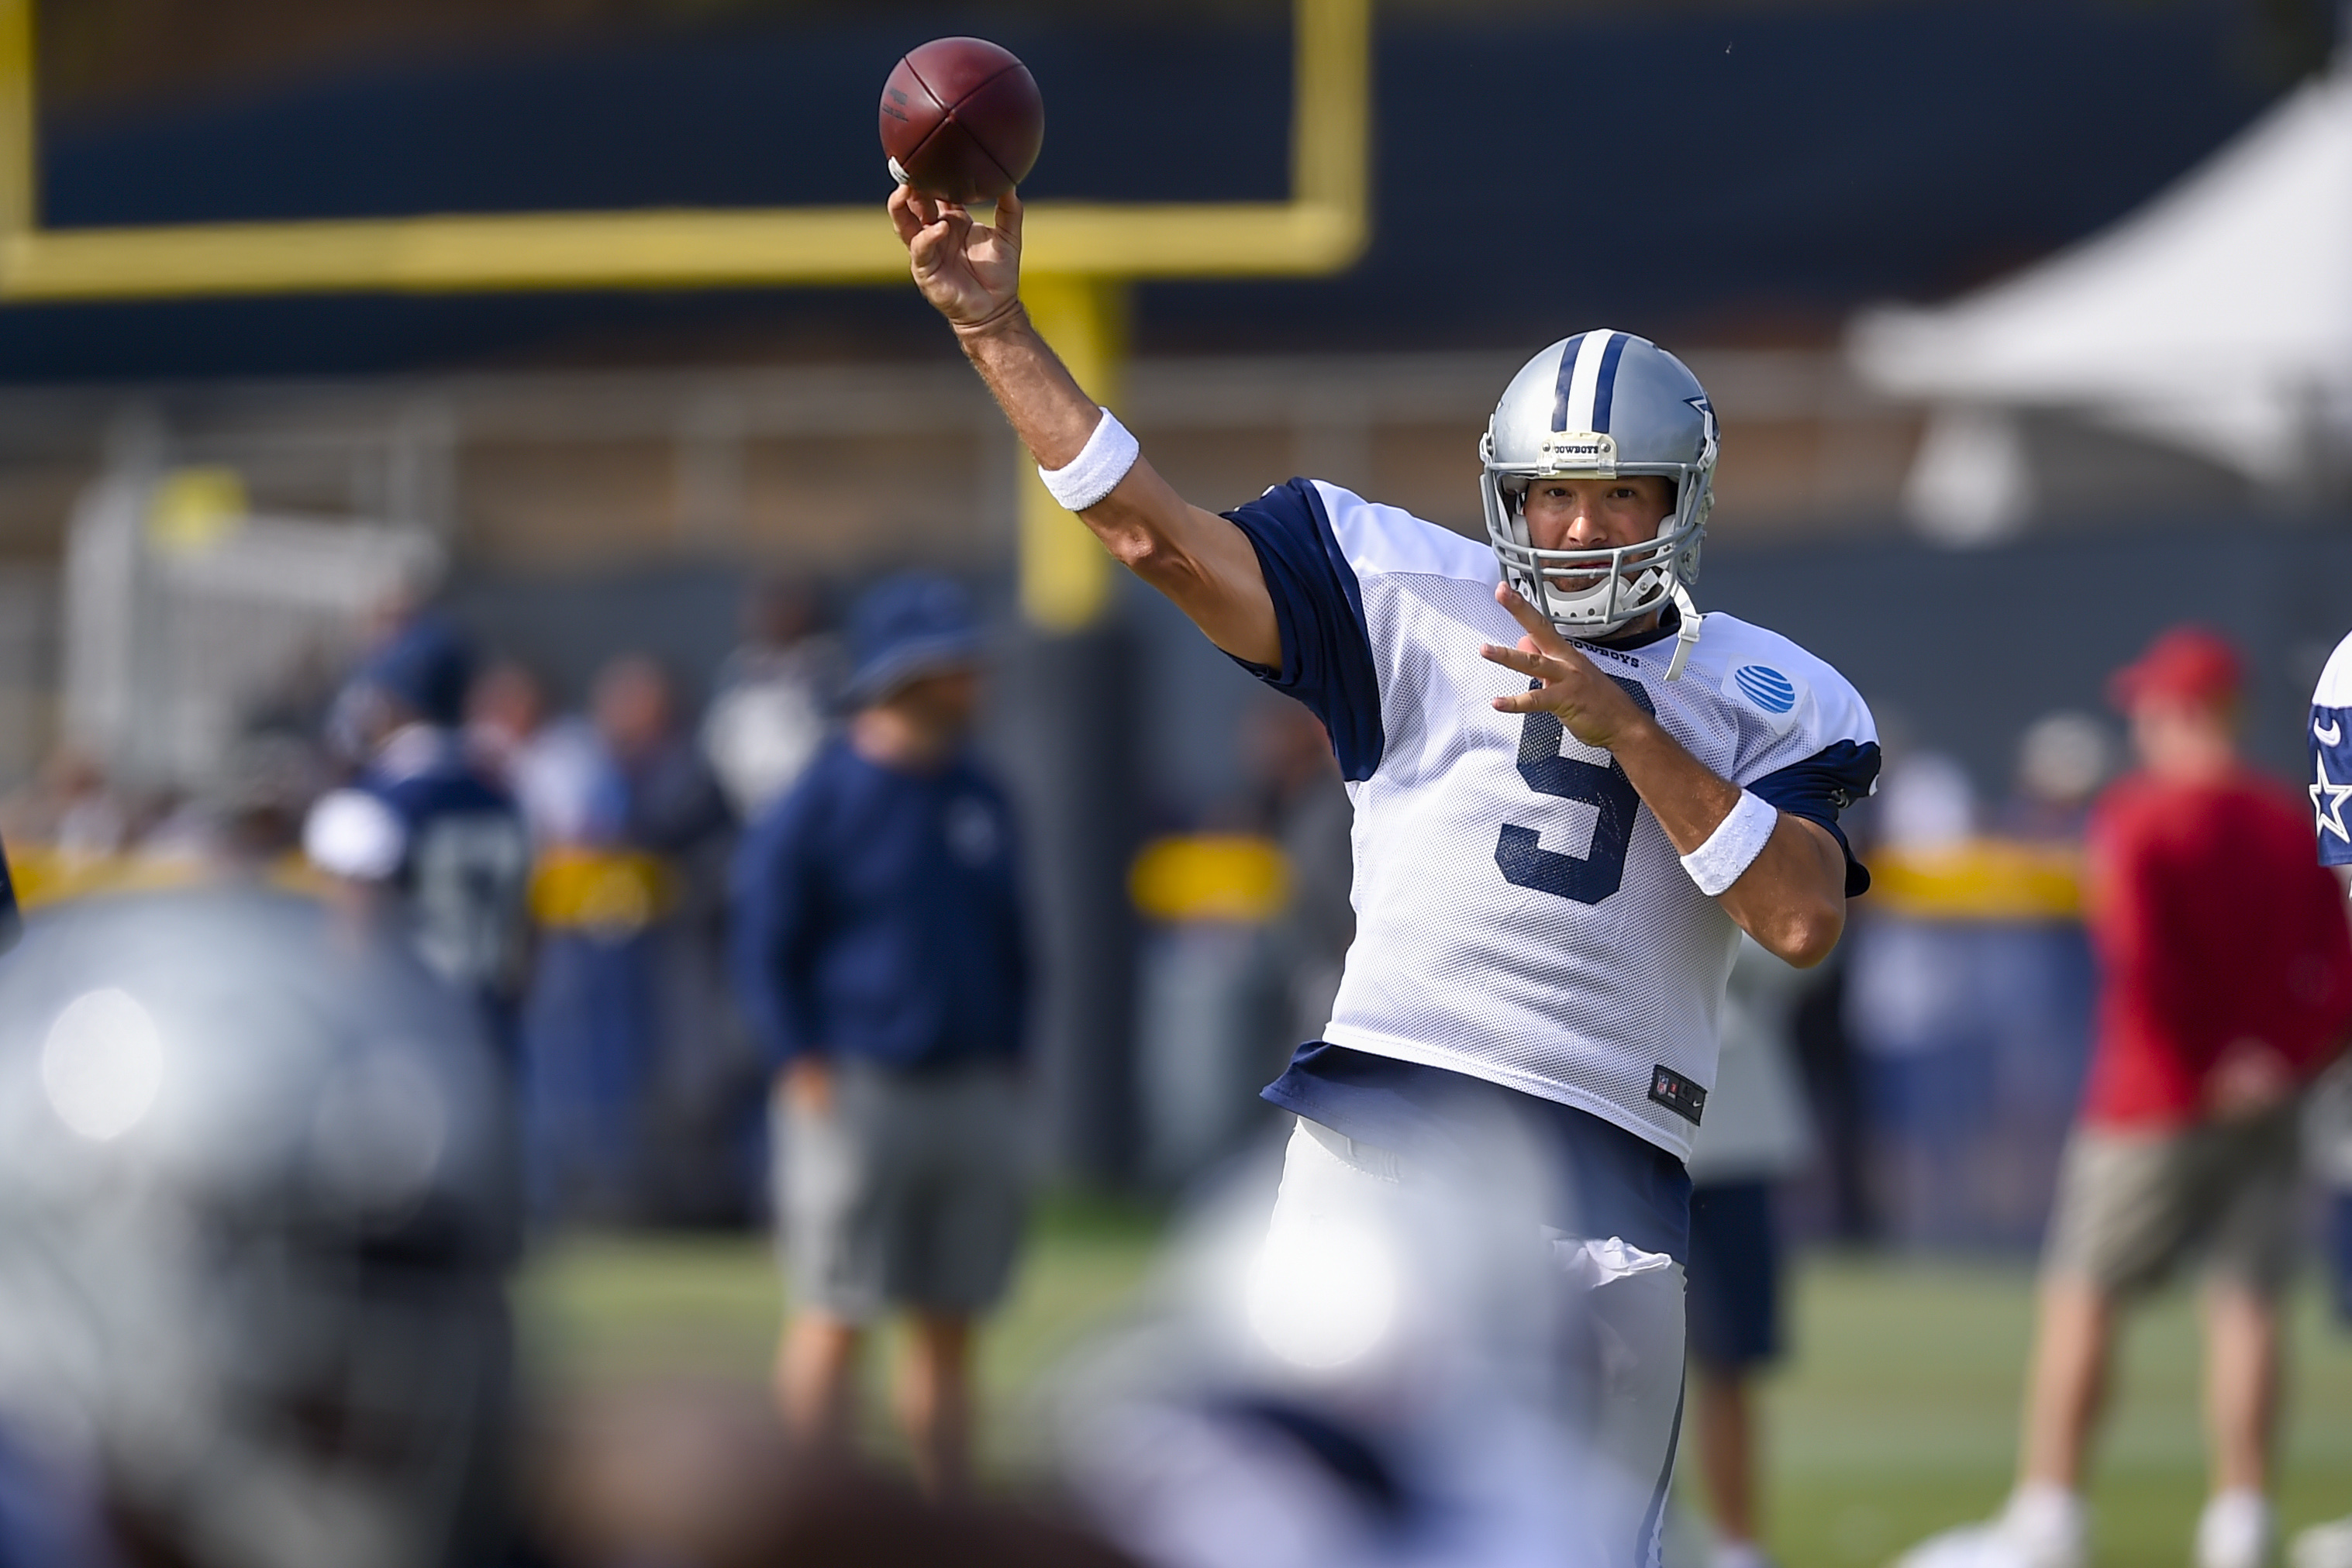 Dallas Cowboys quarterback Tony Romo makes a pass during Dallas Cowboys' NFL football training camp, Monday, Aug. 1, 2016, in Oxnard, Calif. (AP Photo/Gus Ruelas)